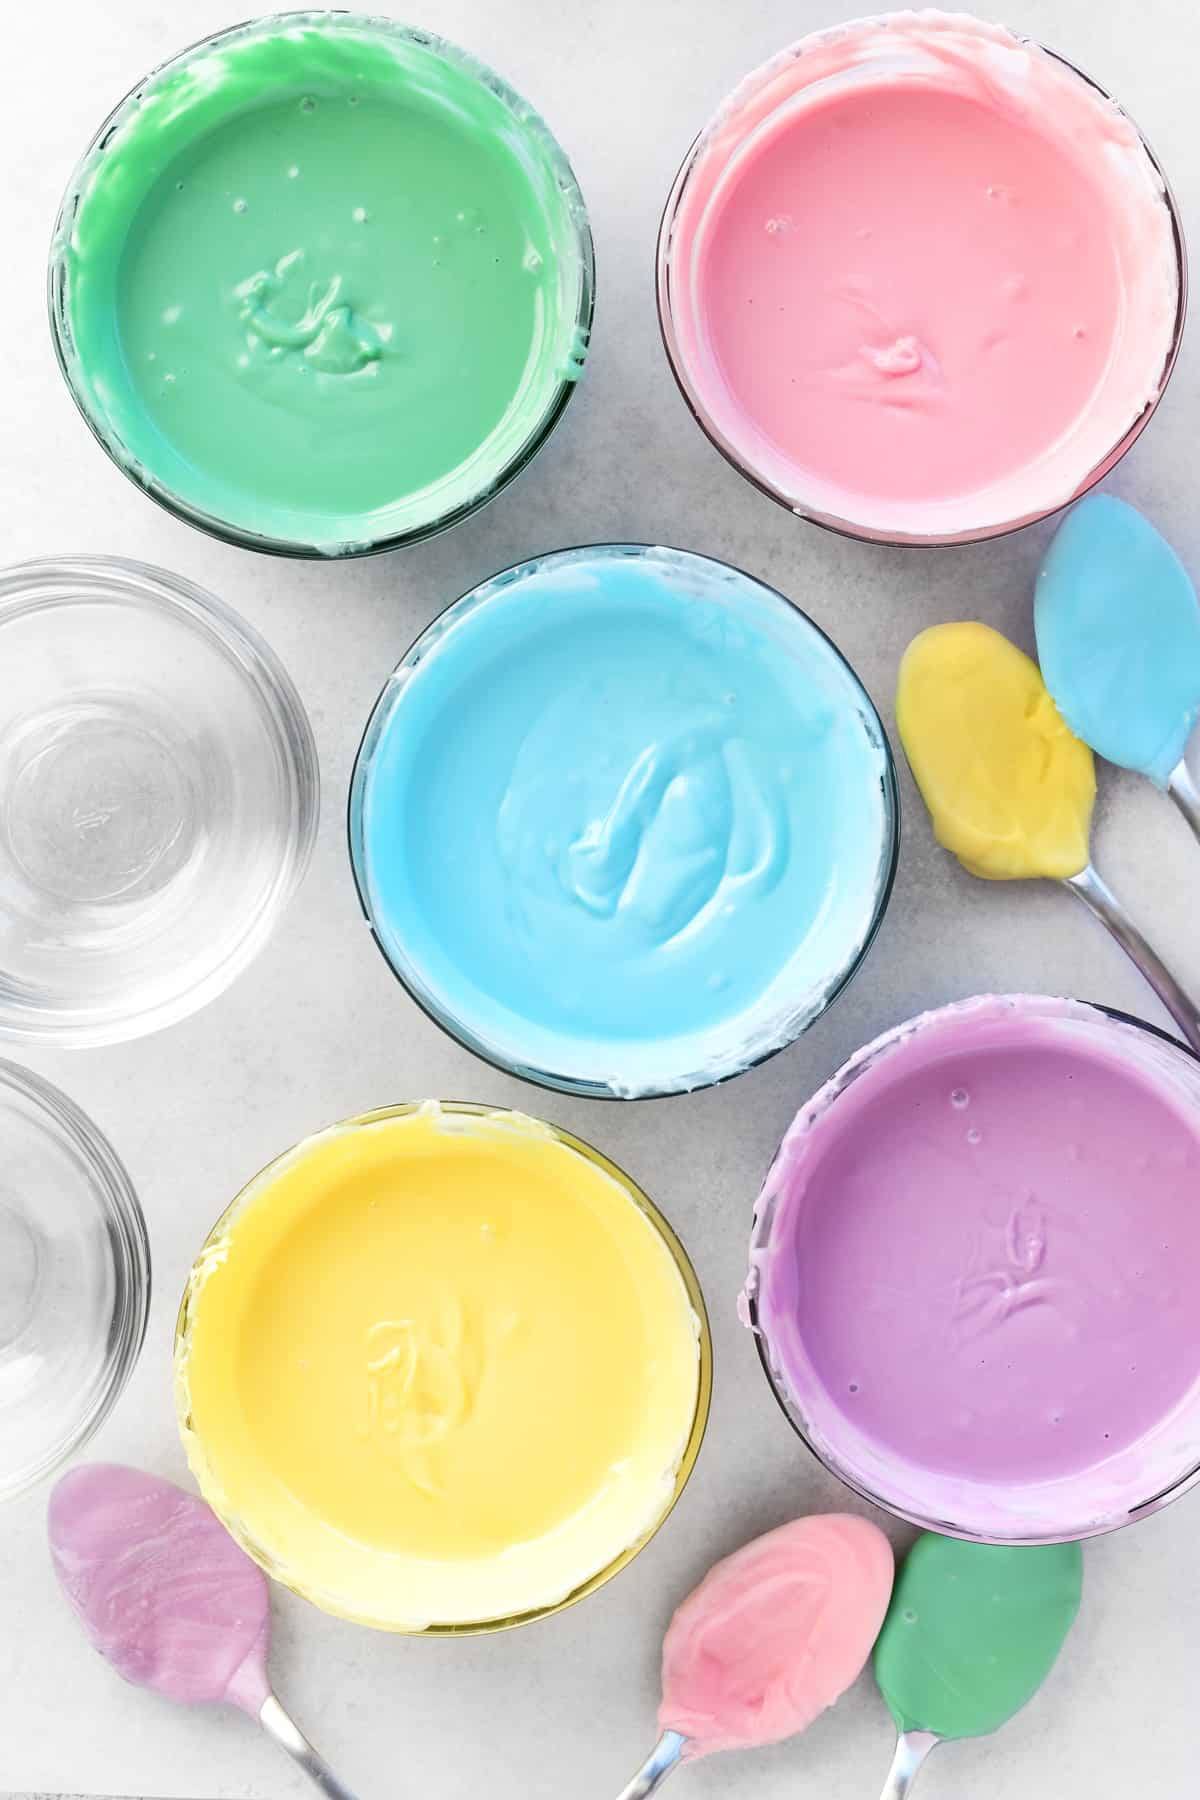 bowls of colorful melted candy